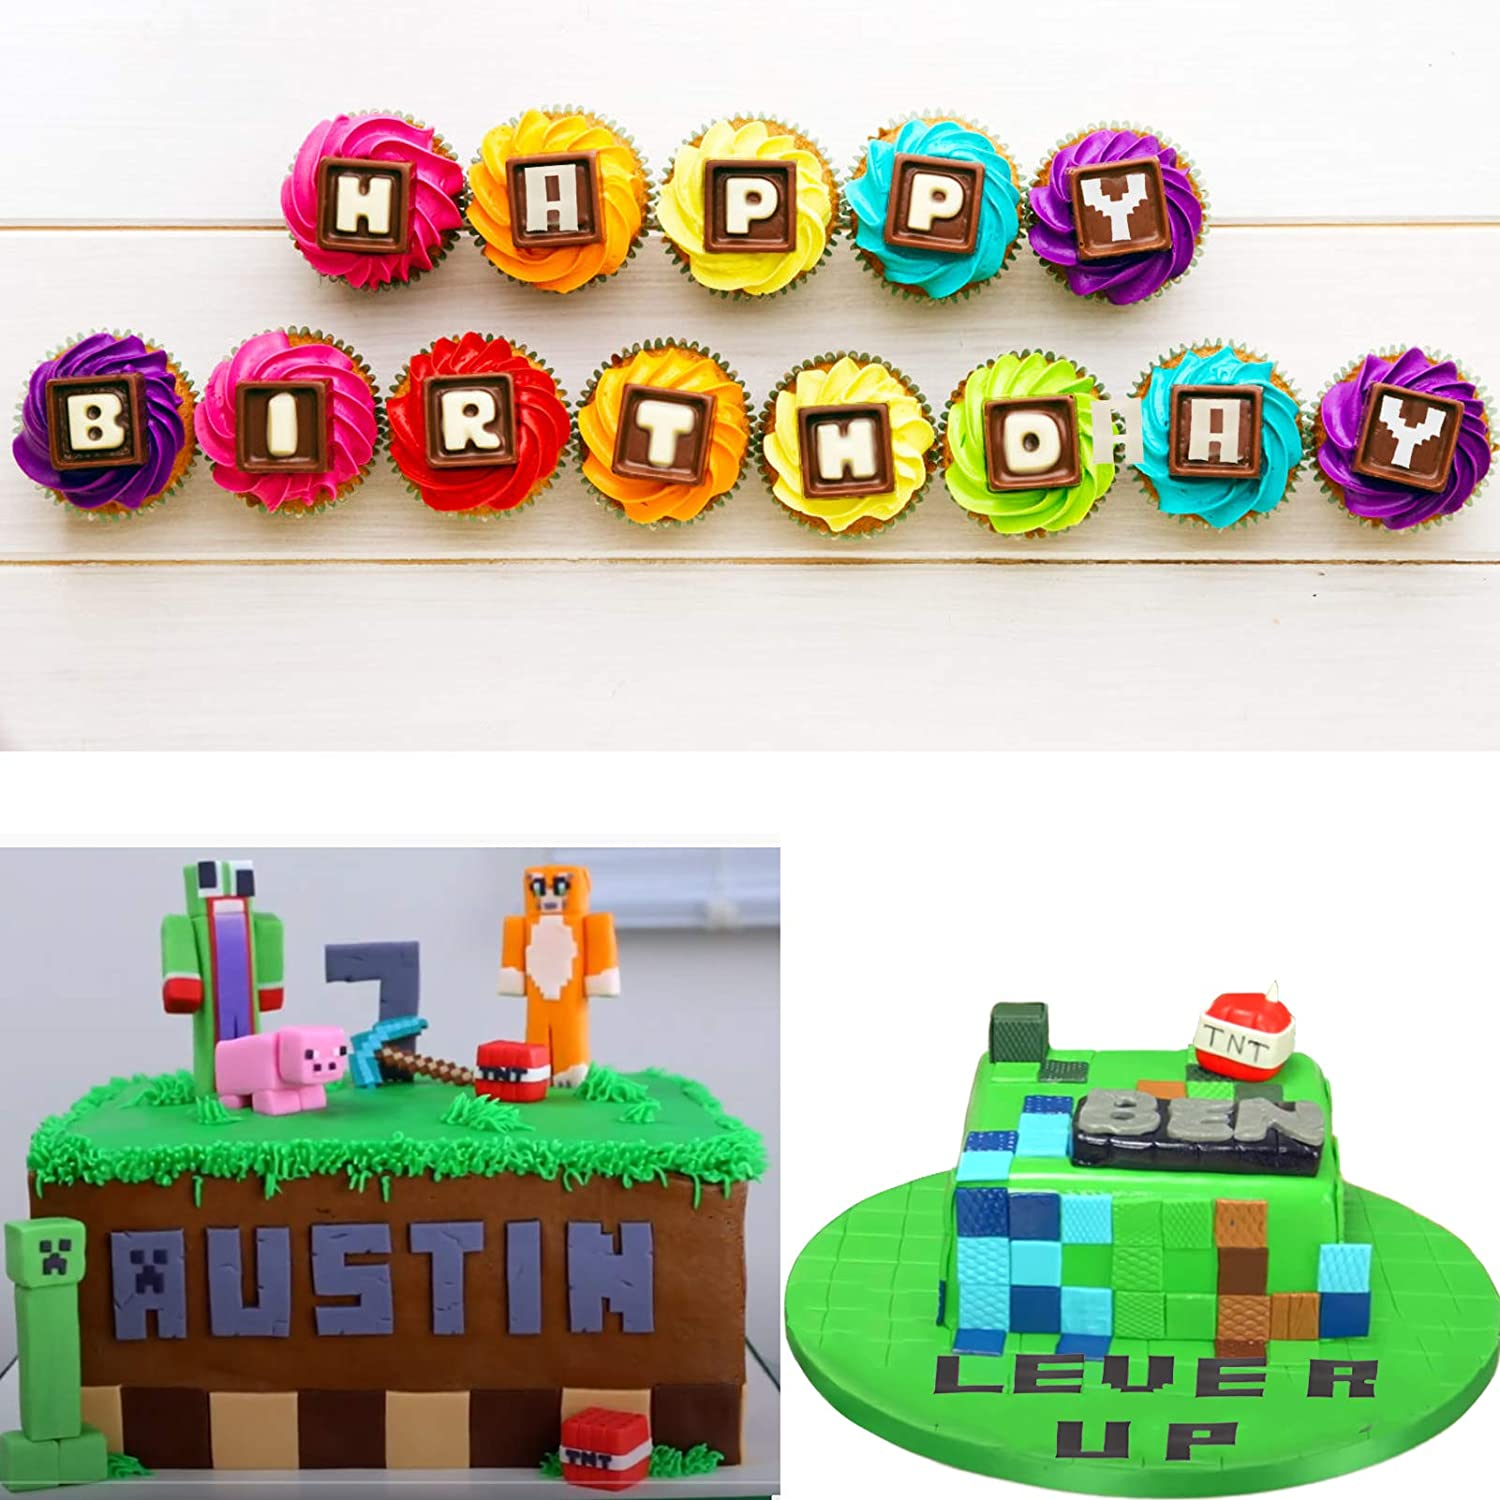 Game Theme Party Cake Decoration Mity rain Video Game Alphabet and Number Fondant Silicone Mold Capital Letter Punctuation Candy Chocolate Mold for DIY Gumpaste SugarCraft Cupcake Topper